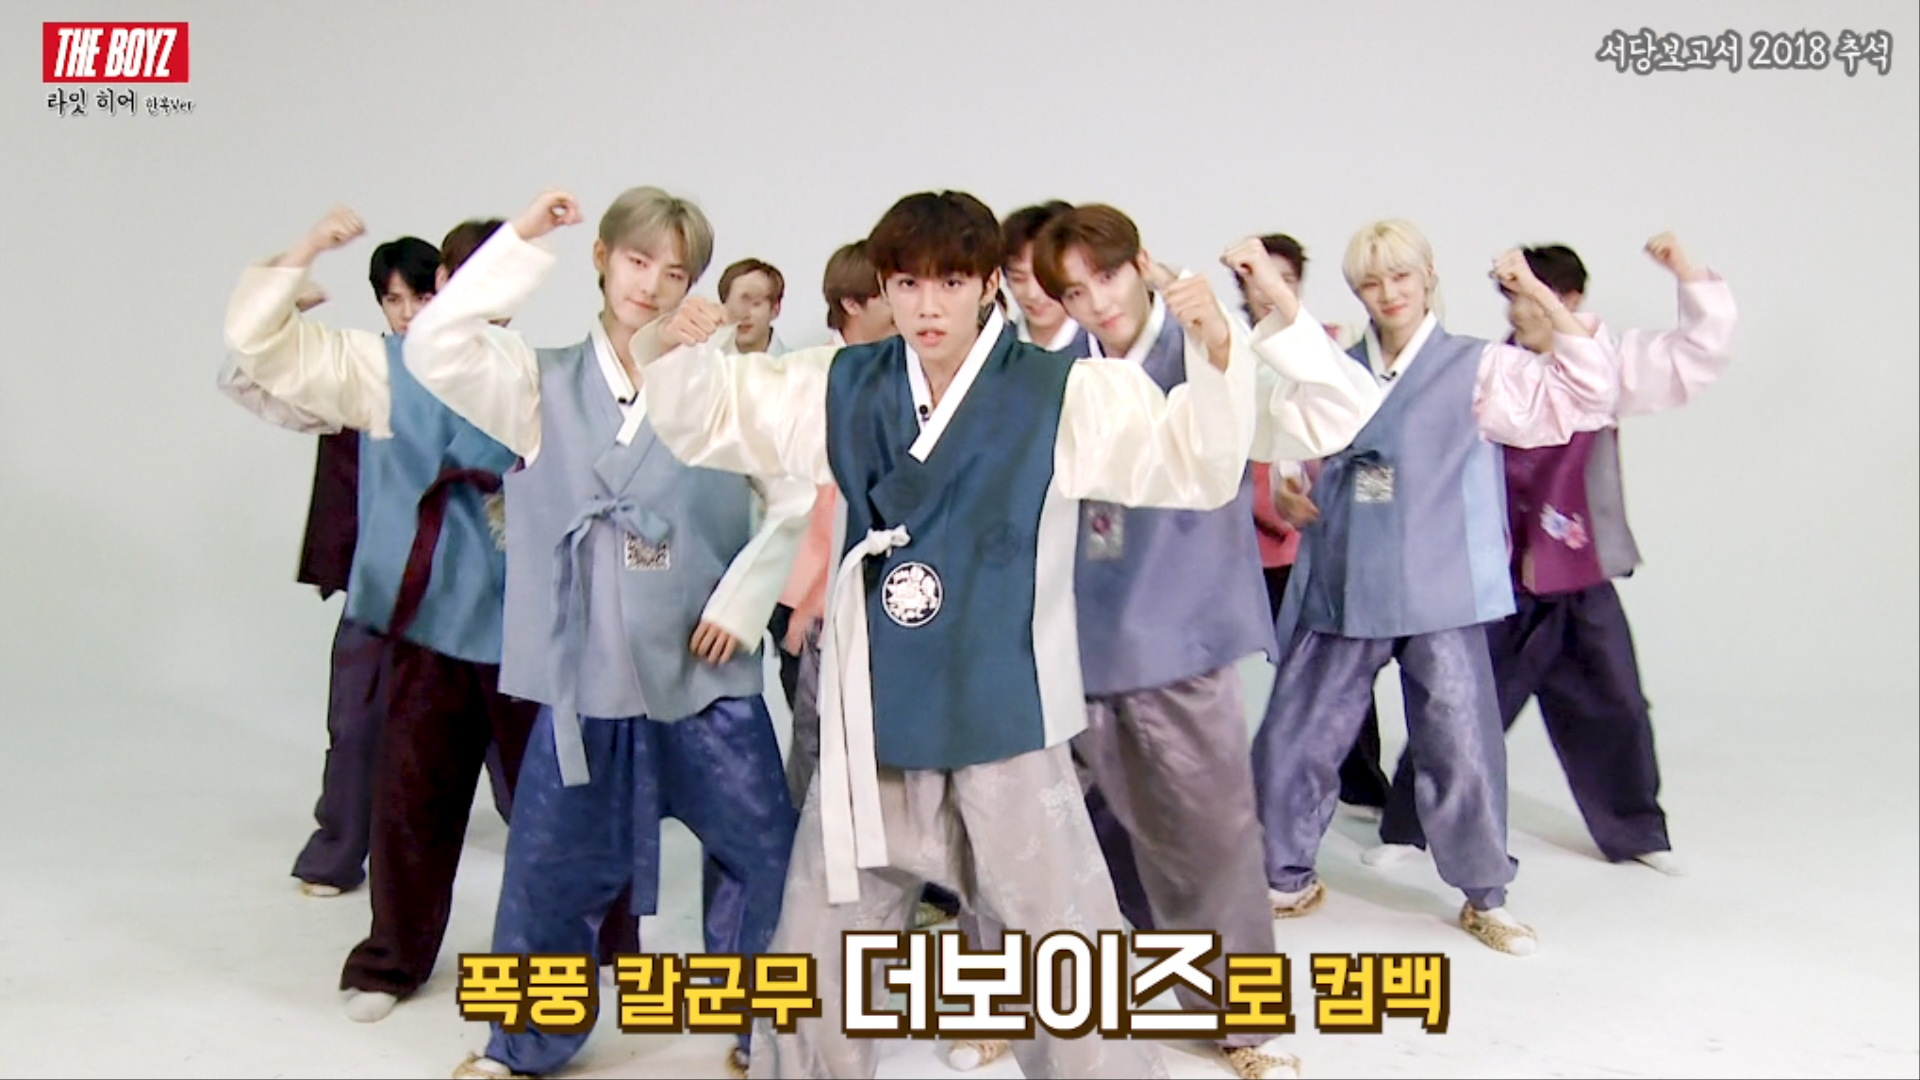 THE BOYZ (더보이즈) 'Right Here' CHOREOGRAPHY VIDEO (Hanbok ver.)